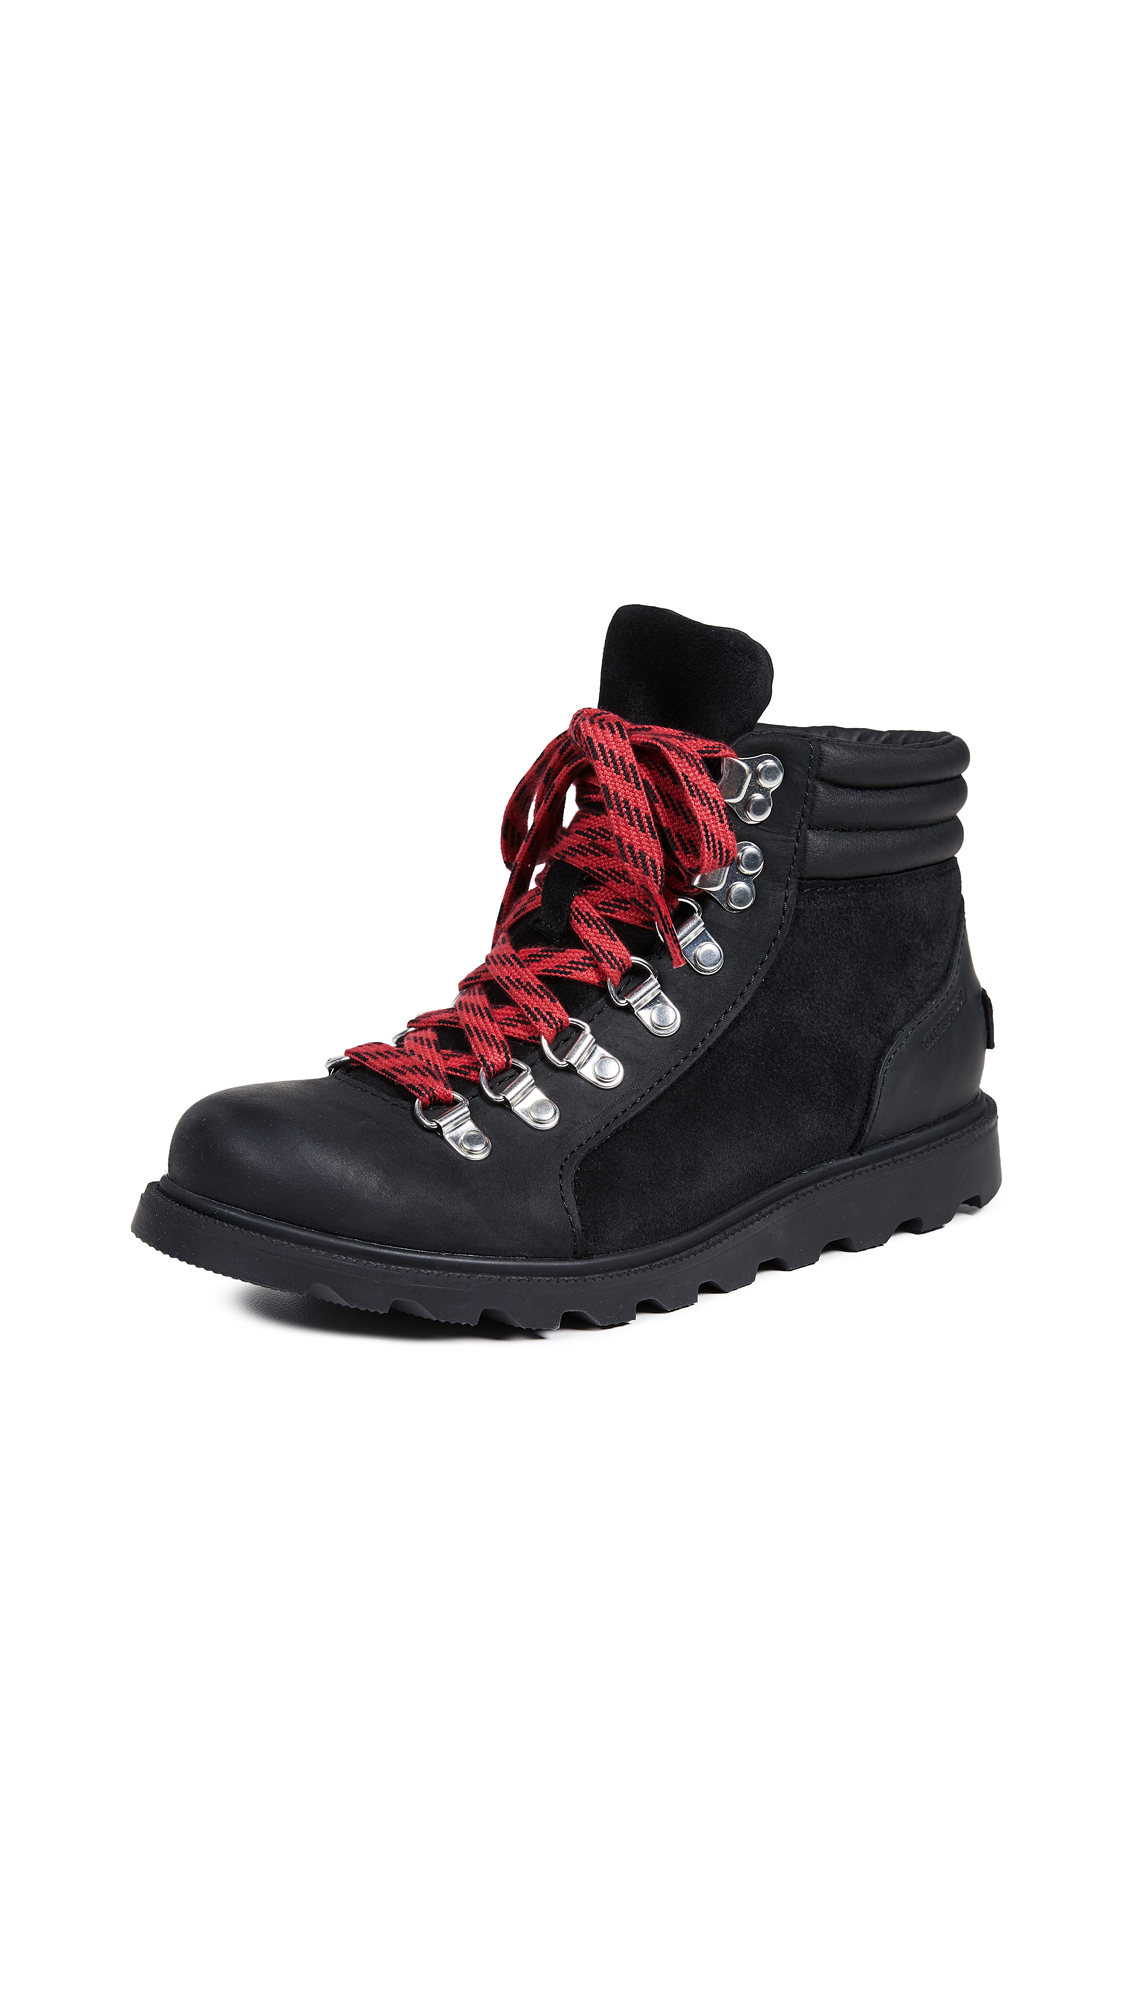 Sorel Ainsley Conquest Boots - Black/Black